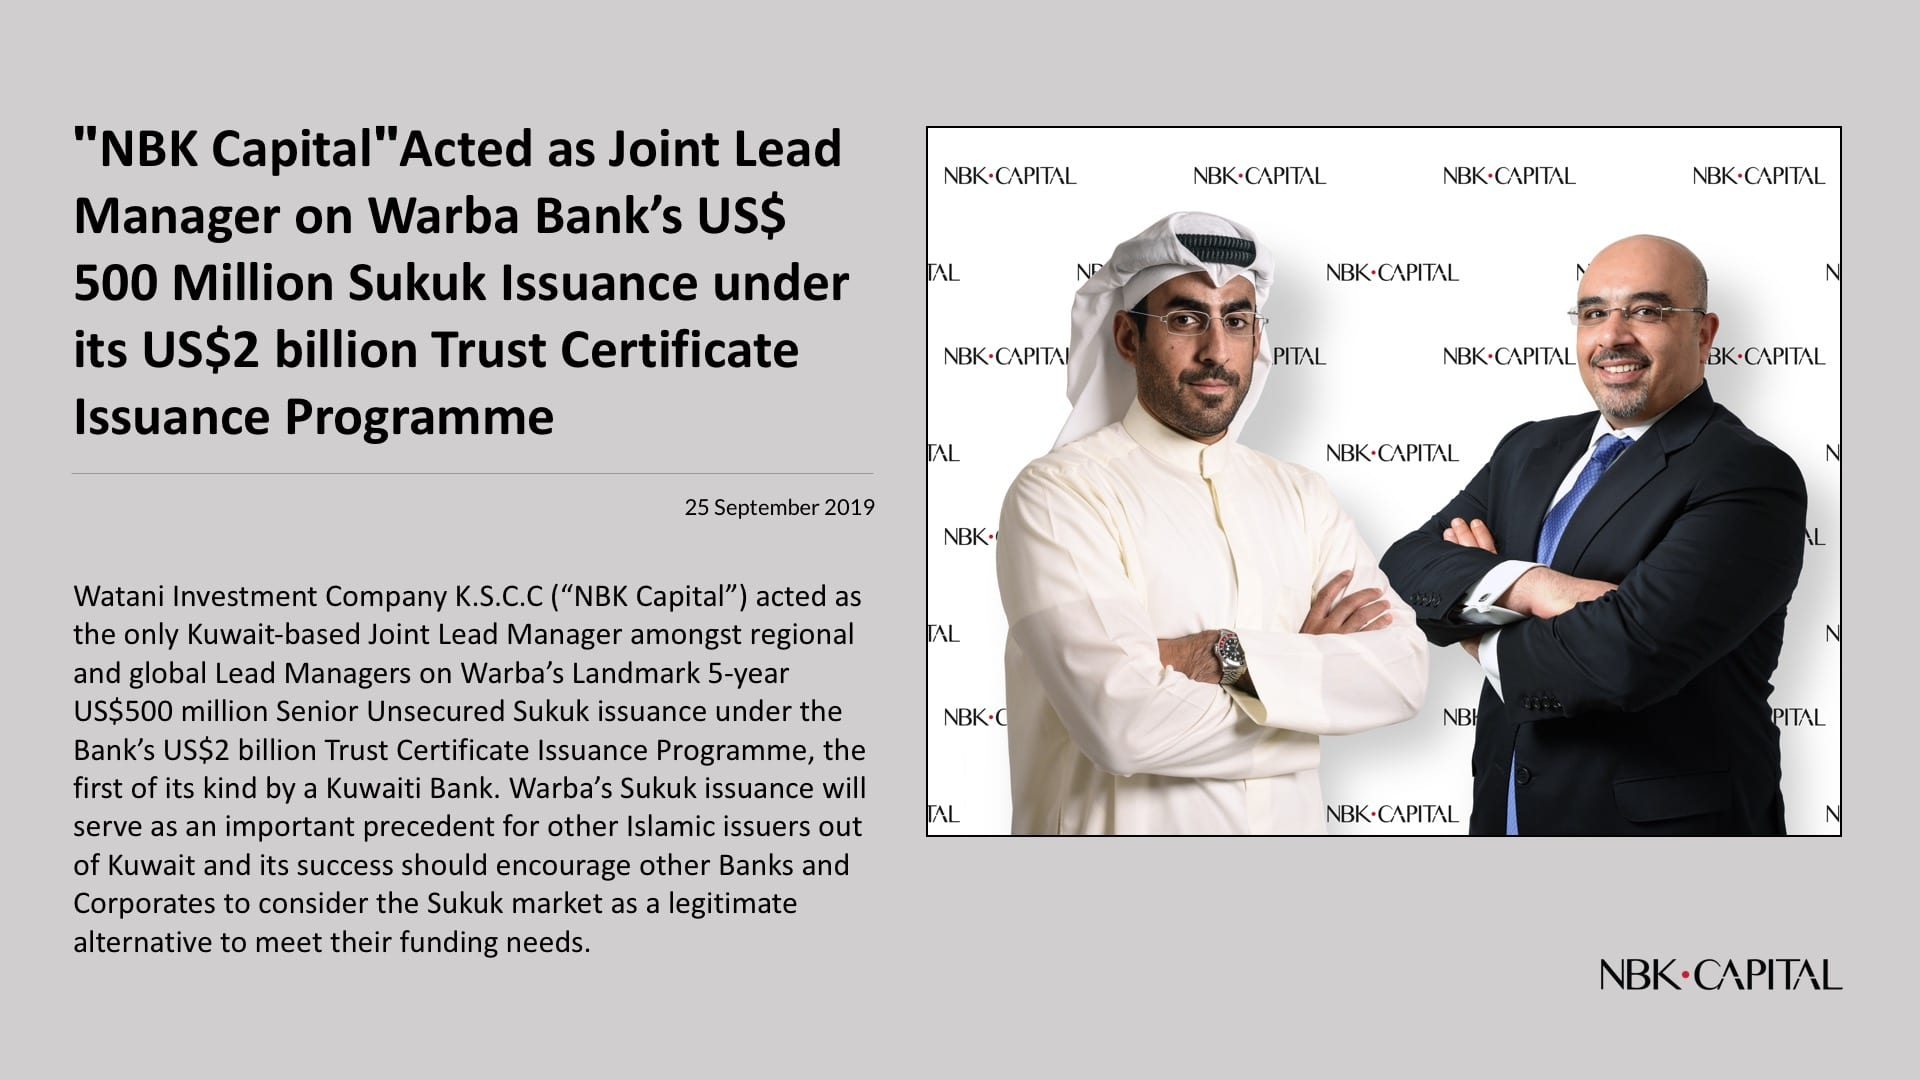 """""""NBK Capital"""" Acted as Joint Lead Manager on Warba Bank's US$ 500 Million Sukuk Issuance under its US$2 billion Trust Certificate Issuance Programme"""